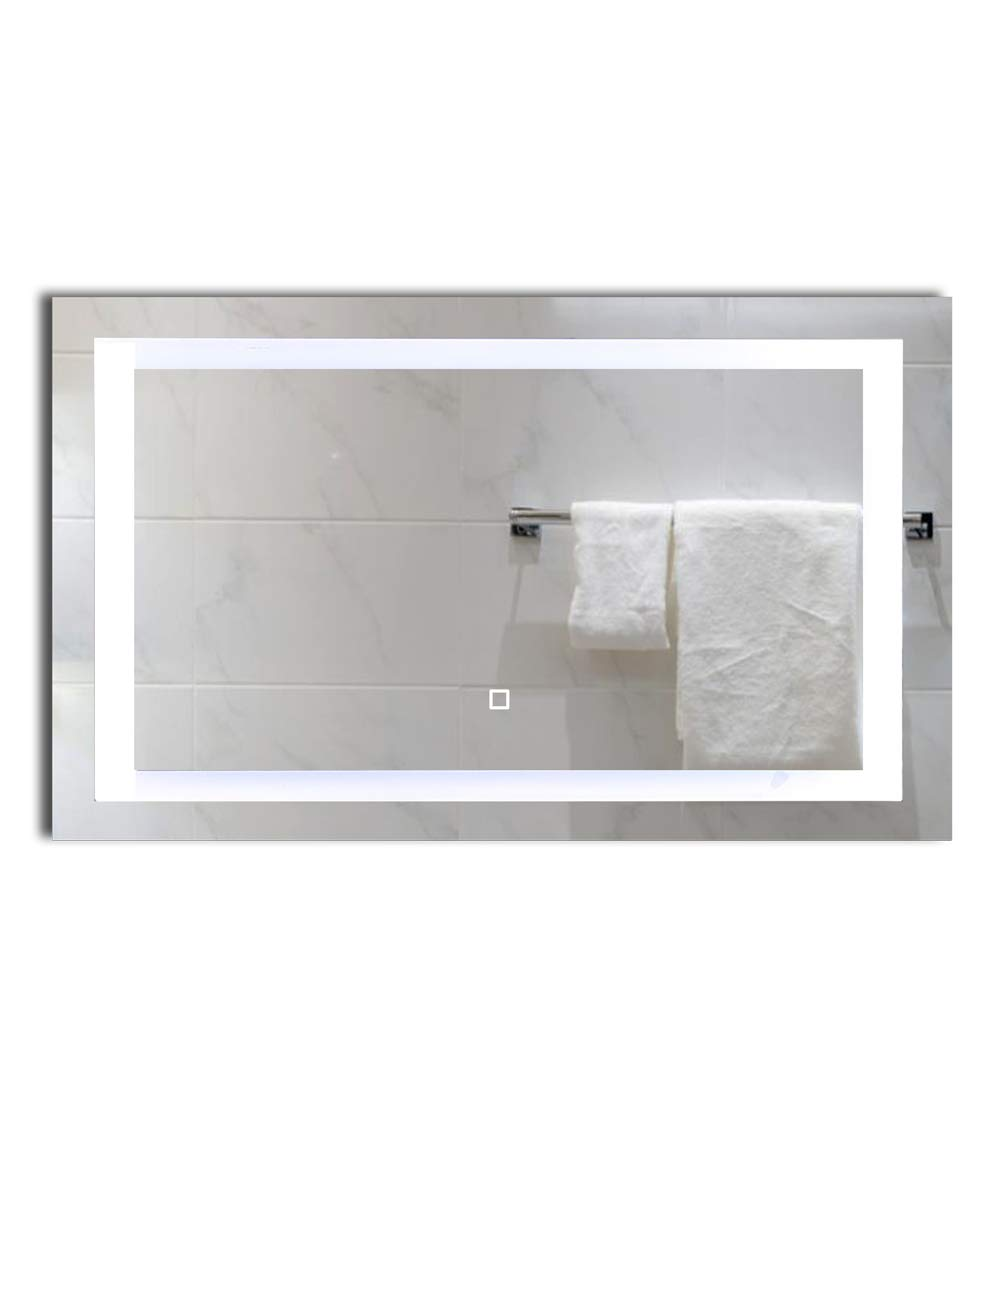 40×24 inch Dimmable LED Lighted Bathroom Wall Mounted Vanity Mirror Dimmable Memory Touch Switch 6500K High Lumen LED True Color CRI 90 Vertical Horizontal Installation